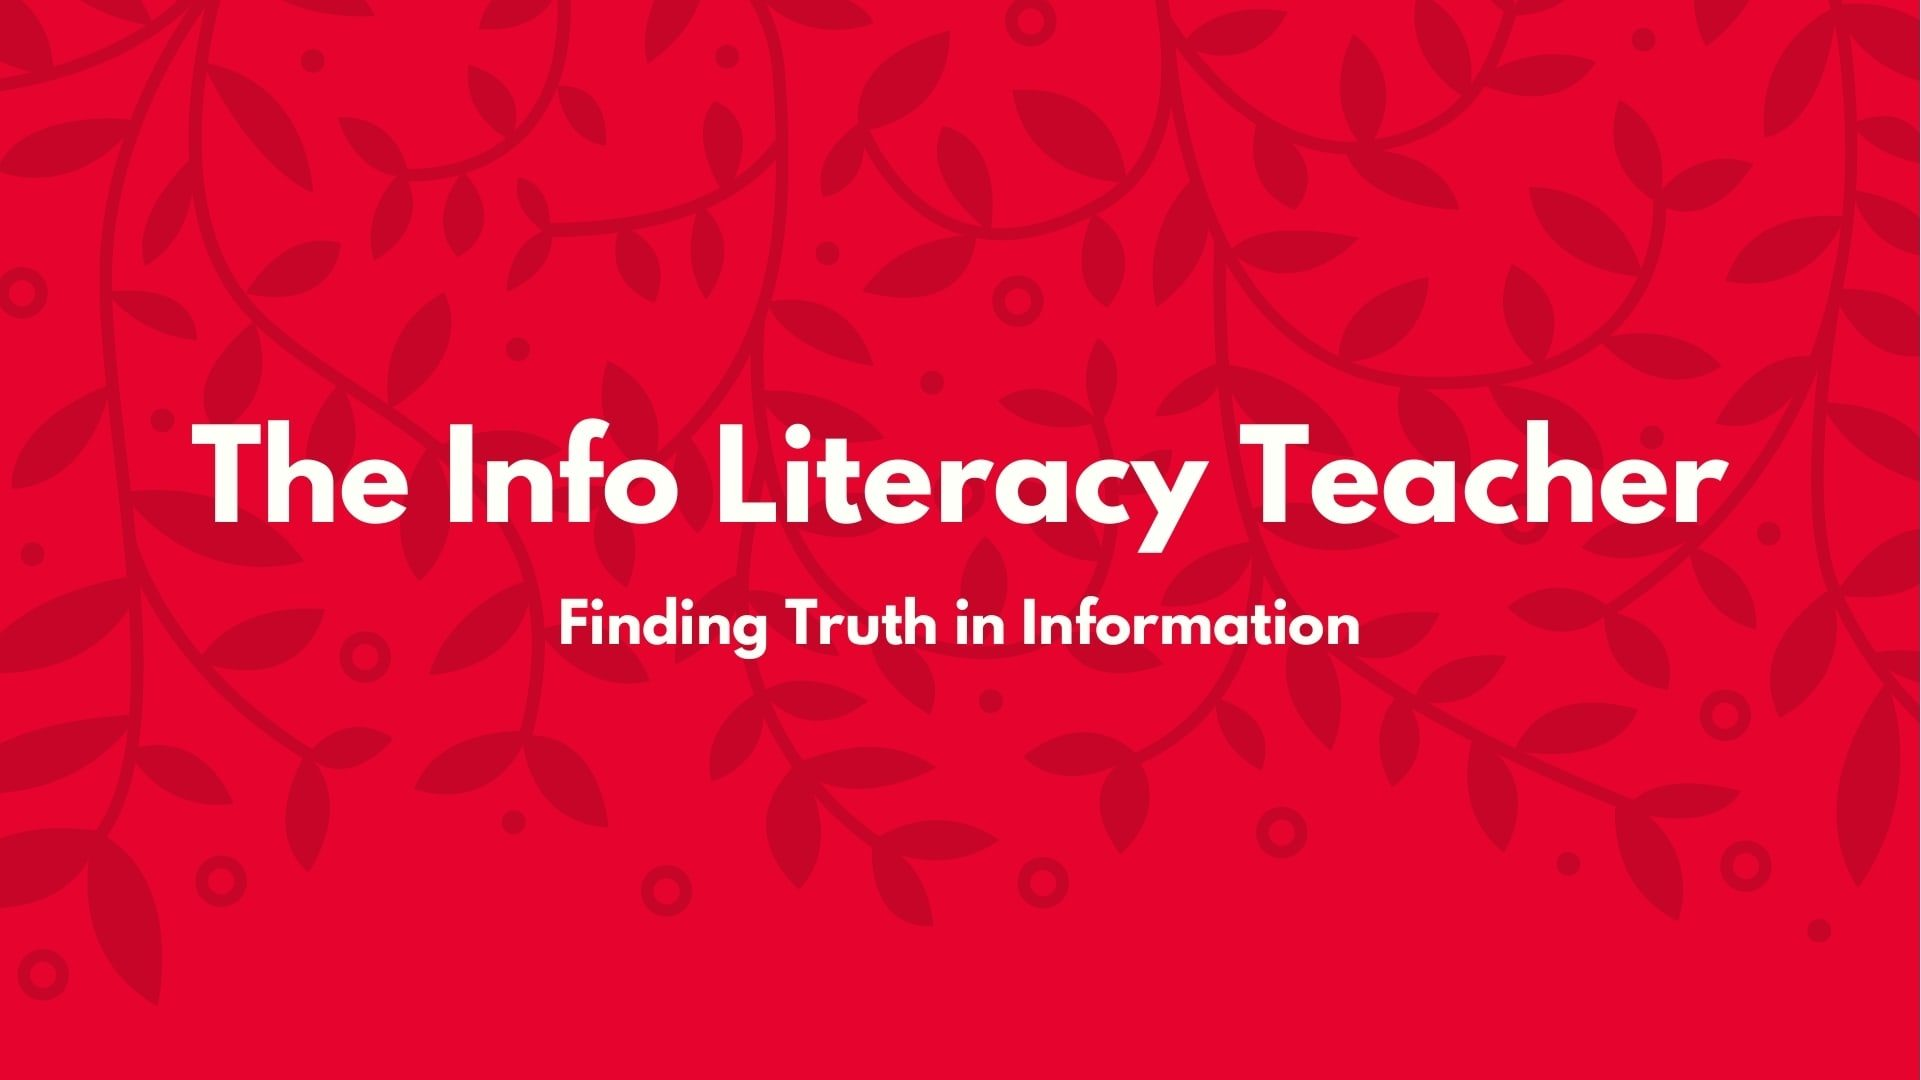 The Info Literacy Teacher